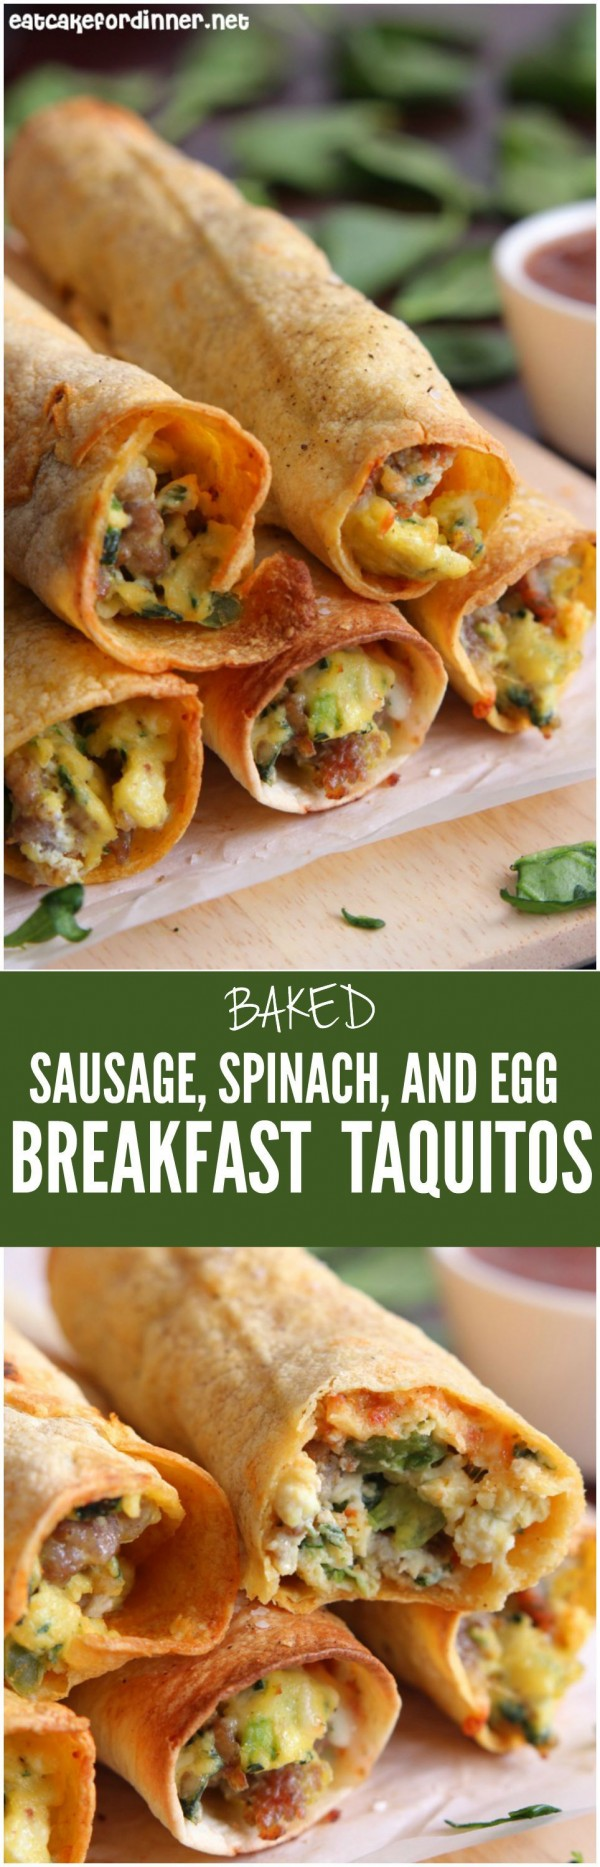 Check out this recipe for breakfast taquitos with baked sausage, spinach and egg. Yummy! #RecipeIdeas @recipes_to_go